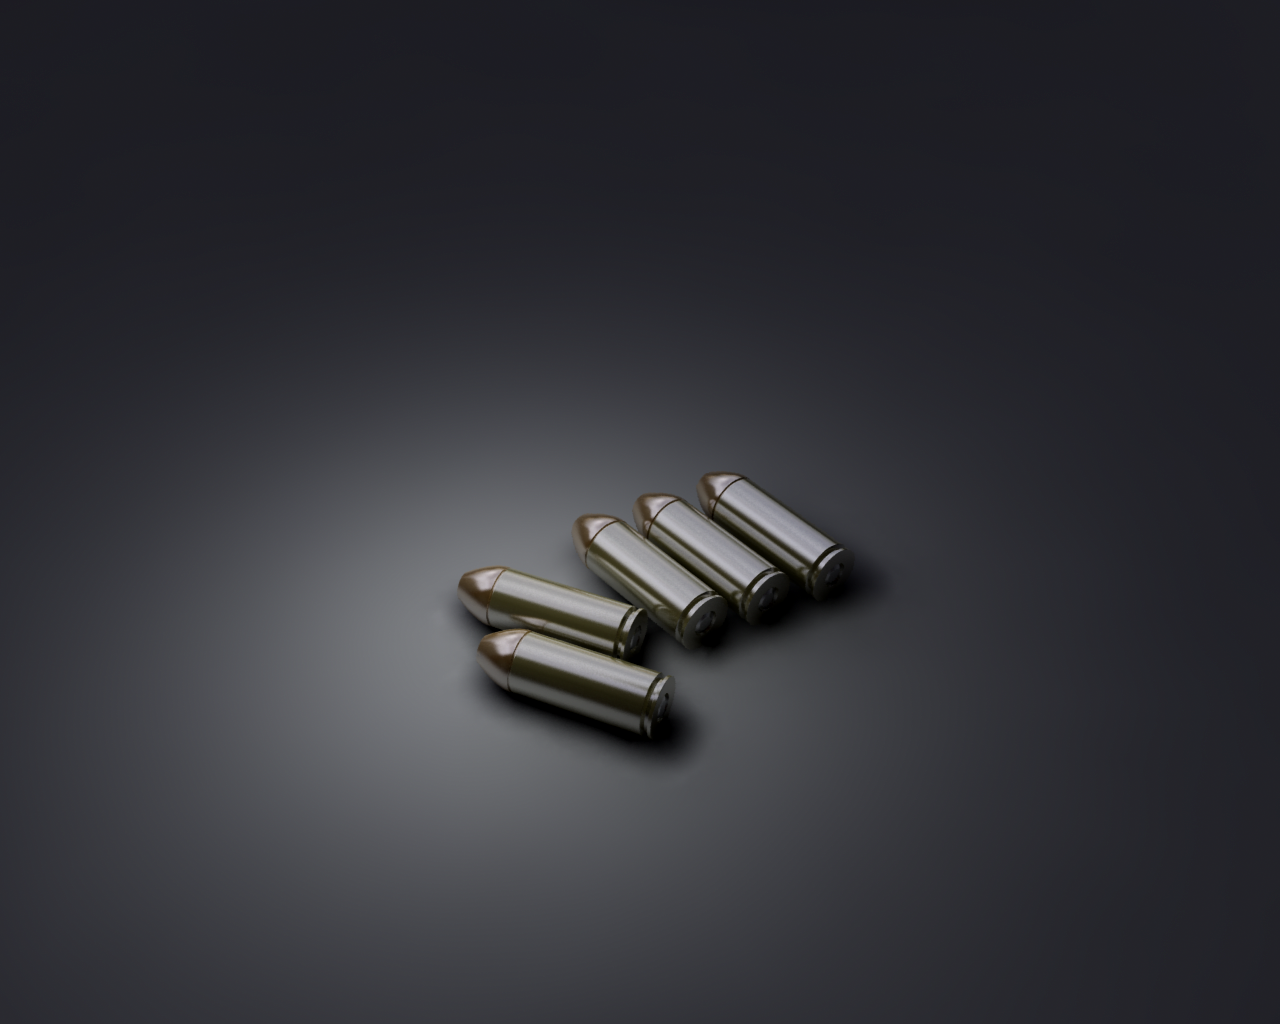 Bullet 3D Wallpapers - HD Wallpapers Blog